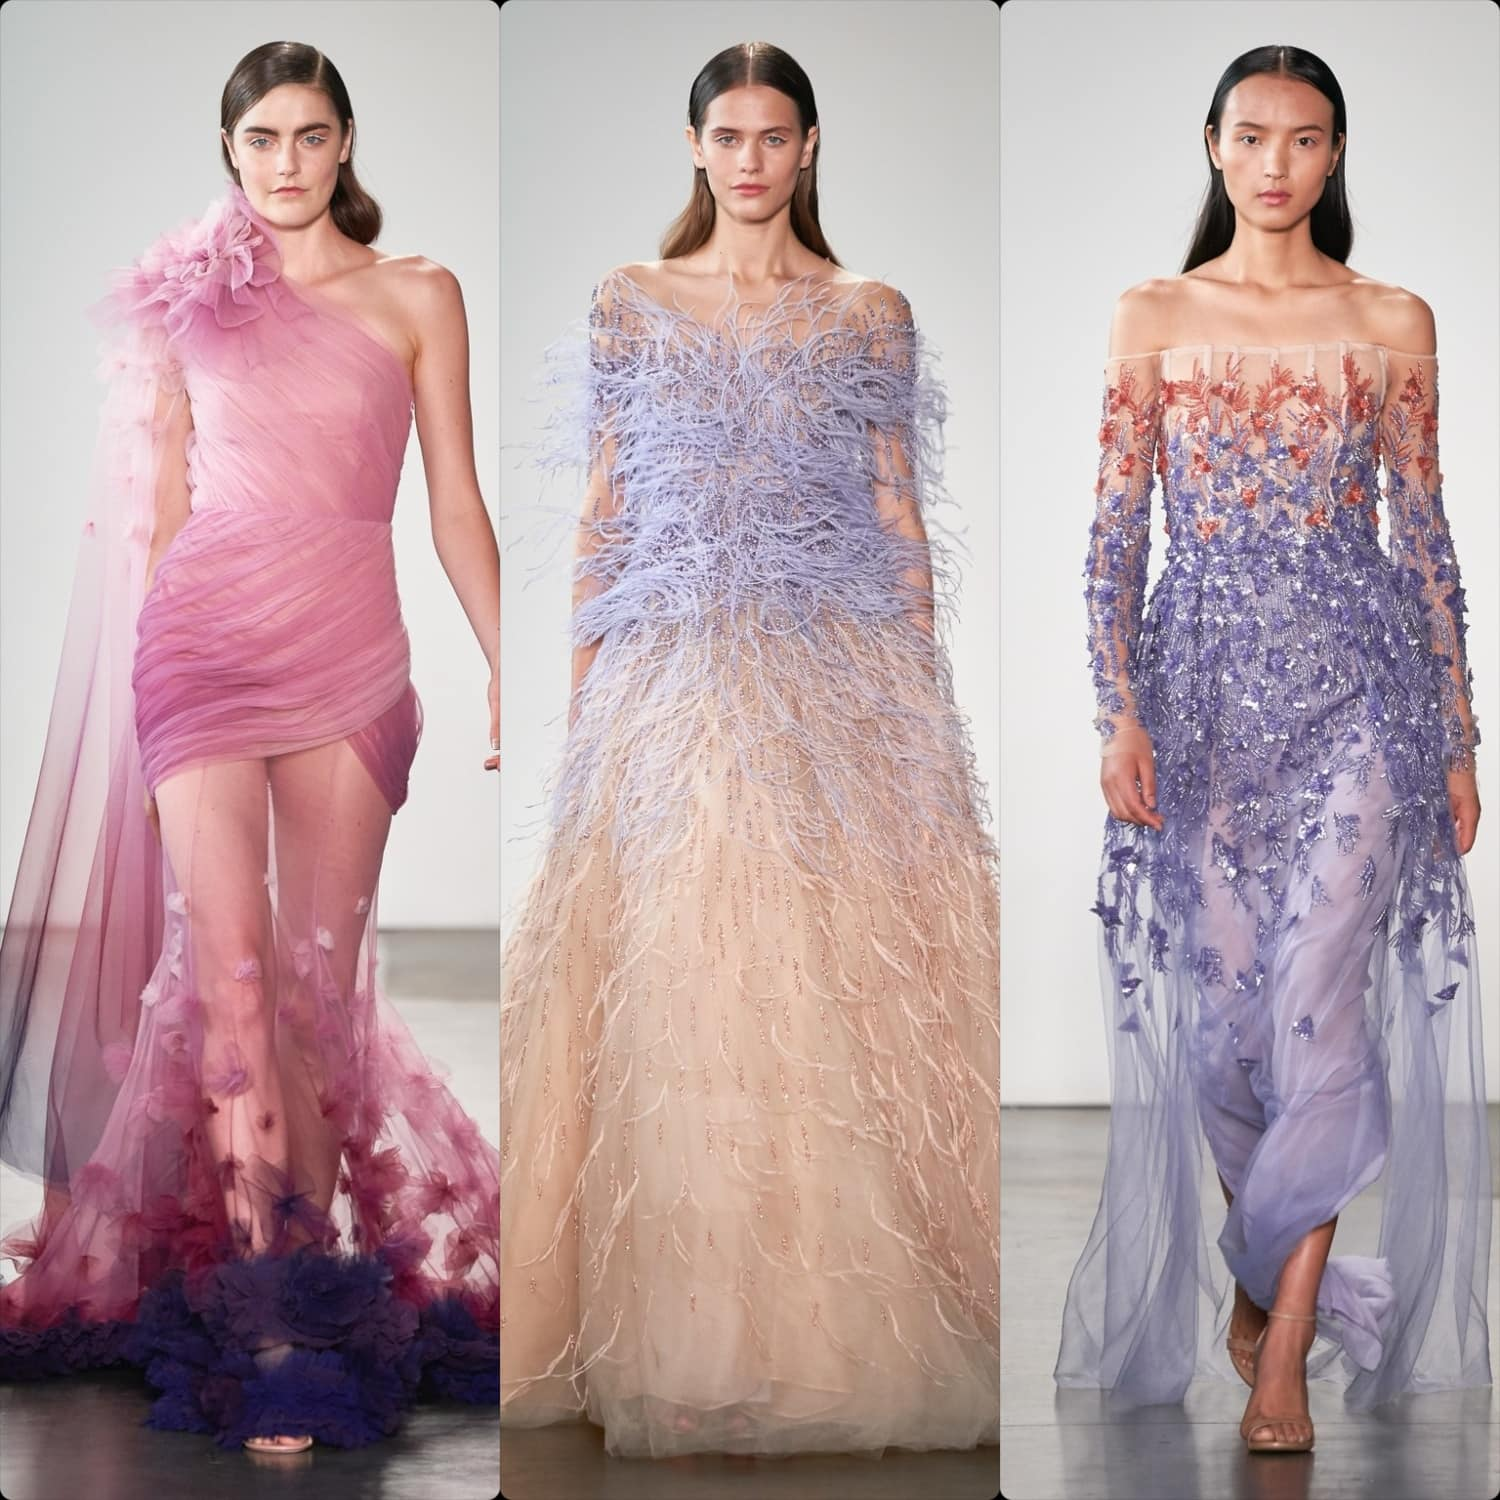 Pamella Roland Spring Summer 2020 New York. RUNWAY MAGAZINE ® Collections. RUNWAY NOW / RUNWAY NEW